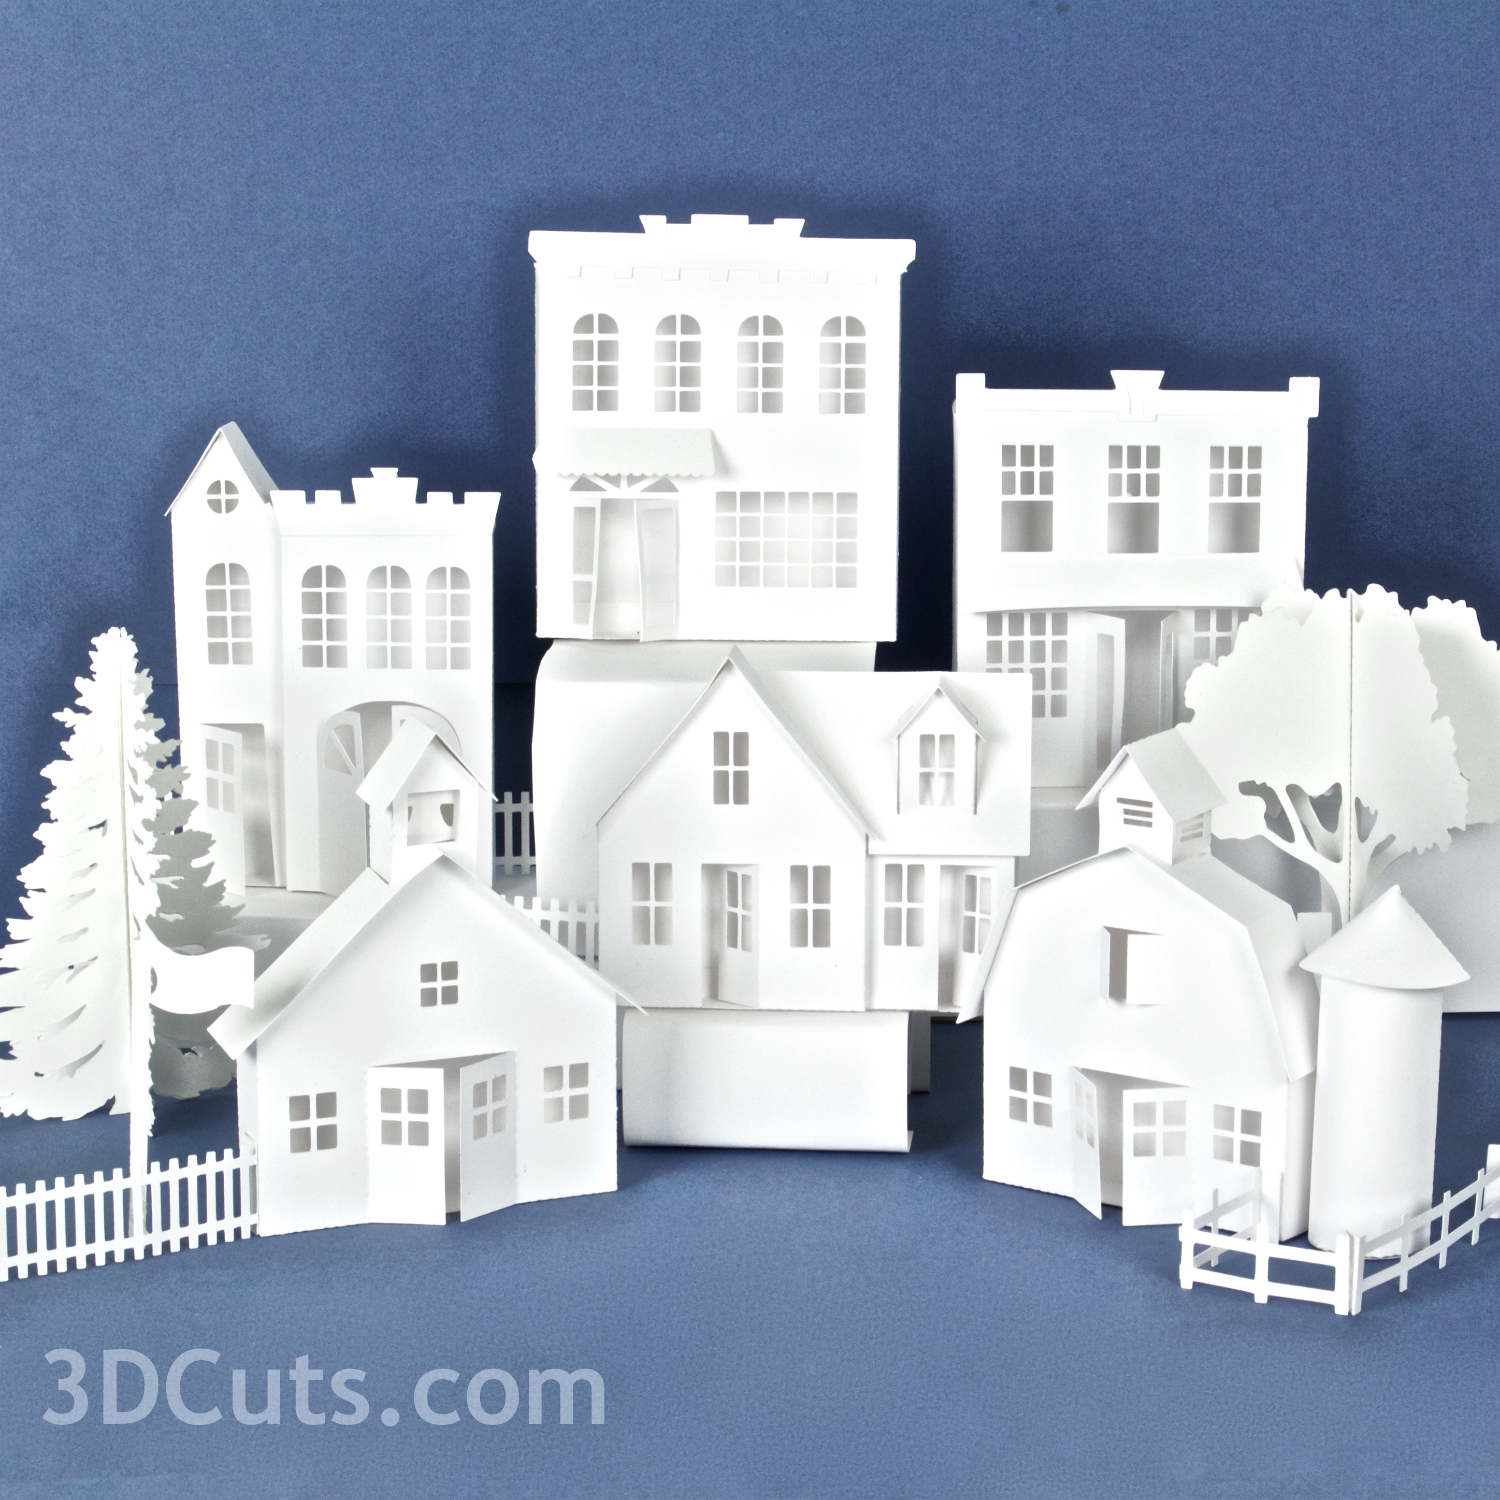 Ledge Village by Marji Roy of 3DCuts.com